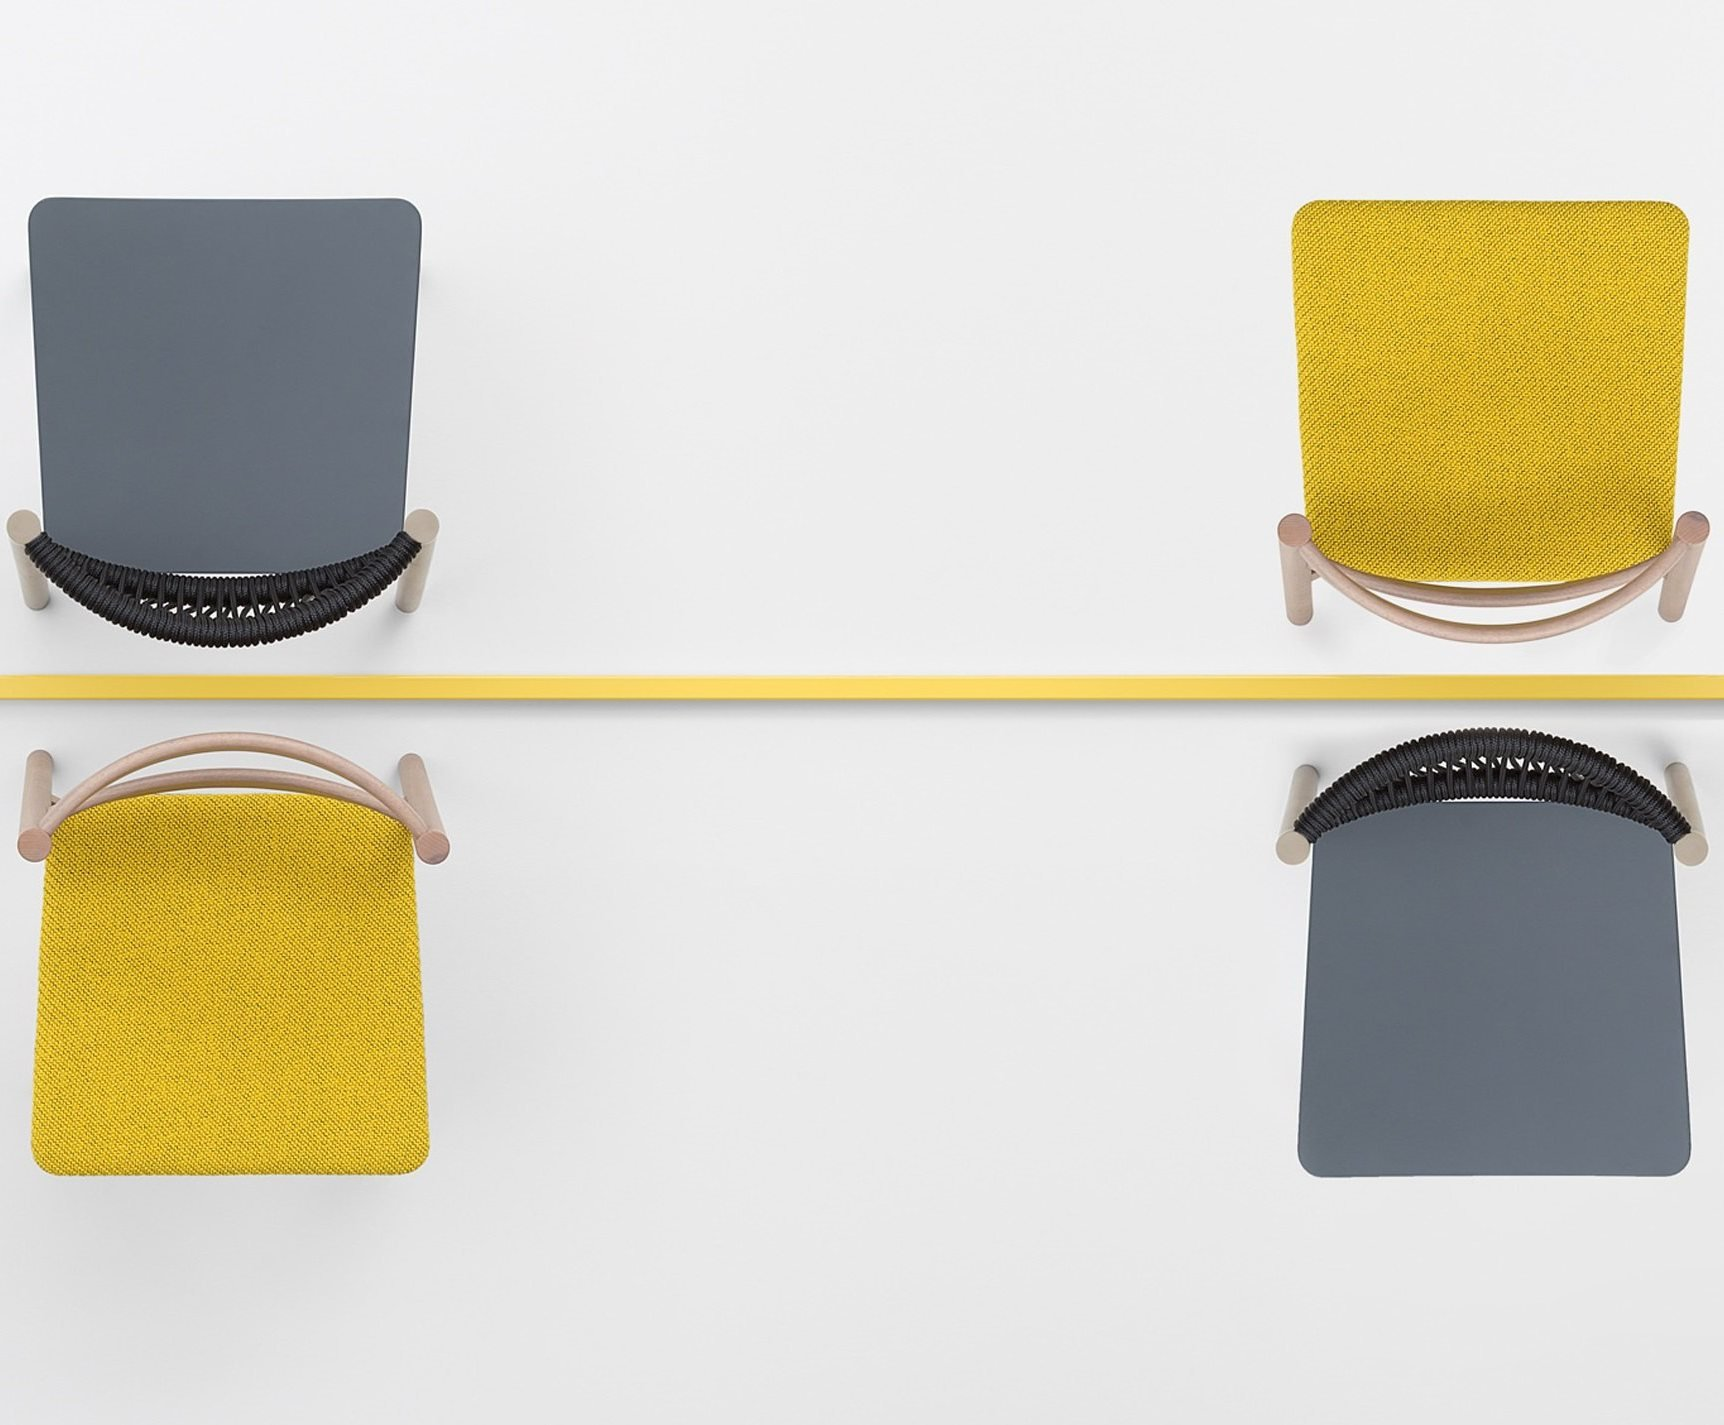 Load Dining Chair from Billiani, designed by Emilio Nanni